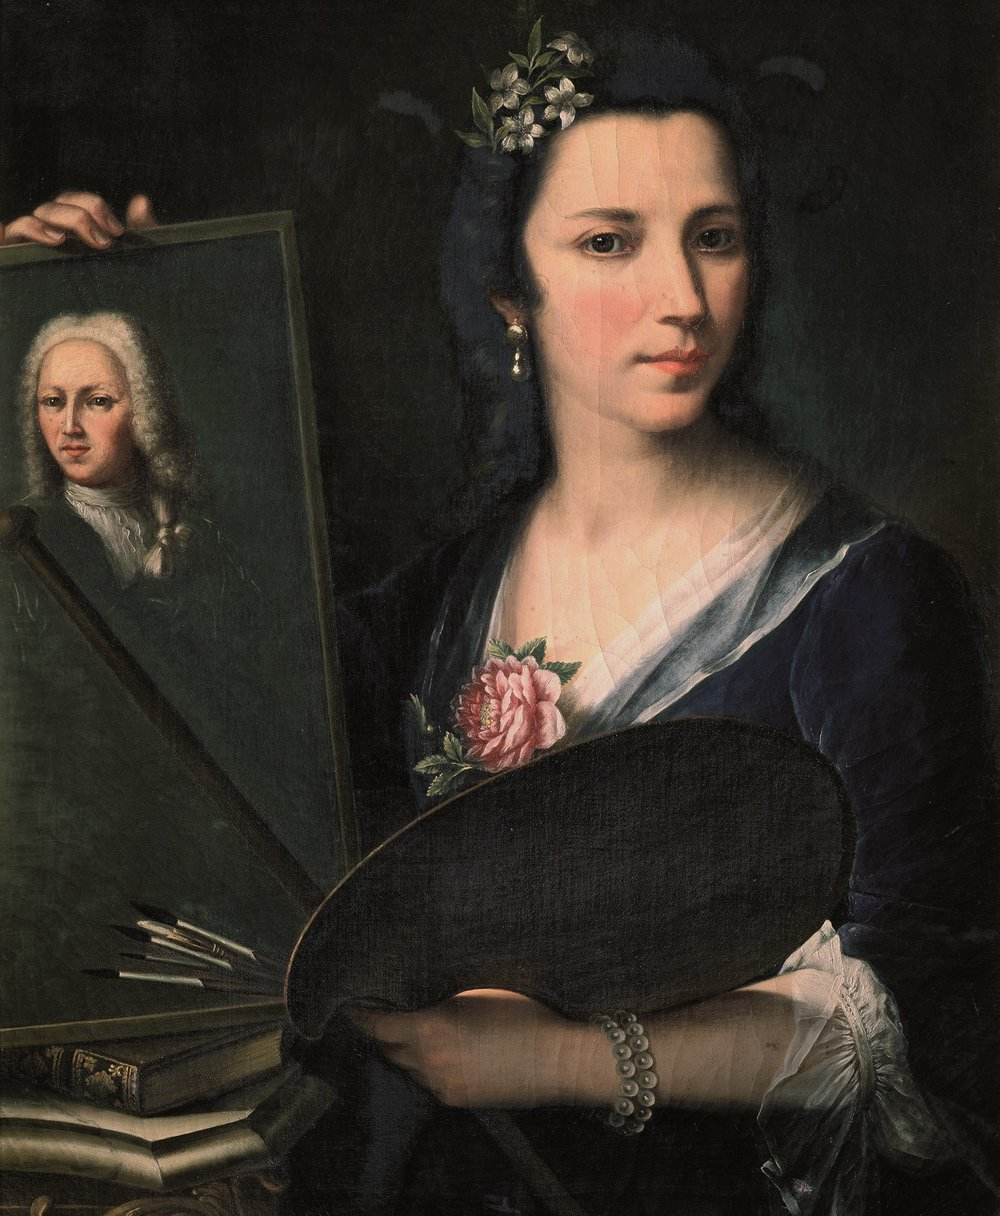 "Violante Siries Cerroti's Self Portrait, Uffizi Gallery Collection     Normal   0       14       false   false   false     IT   X-NONE   X-NONE                                                                                                                                                                                                                                                                                                                                                                          /* Style Definitions */  table.MsoNormalTable 	{mso-style-name:""Tabella normale""; 	mso-tstyle-rowband-size:0; 	mso-tstyle-colband-size:0; 	mso-style-noshow:yes; 	mso-style-priority:99; 	mso-style-qformat:yes; 	mso-style-parent:""""; 	mso-padding-alt:0cm 5.4pt 0cm 5.4pt; 	mso-para-margin:0cm; 	mso-para-margin-bottom:.0001pt; 	mso-pagination:widow-orphan; 	font-size:11.0pt; 	font-family:""Calibri"",""sans-serif""; 	mso-ascii-font-family:Calibri; 	mso-ascii-theme-font:minor-latin; 	mso-fareast-font-family:""Times New Roman""; 	mso-fareast-theme-font:minor-fareast; 	mso-hansi-font-family:Calibri; 	mso-hansi-theme-font:minor-latin;}"